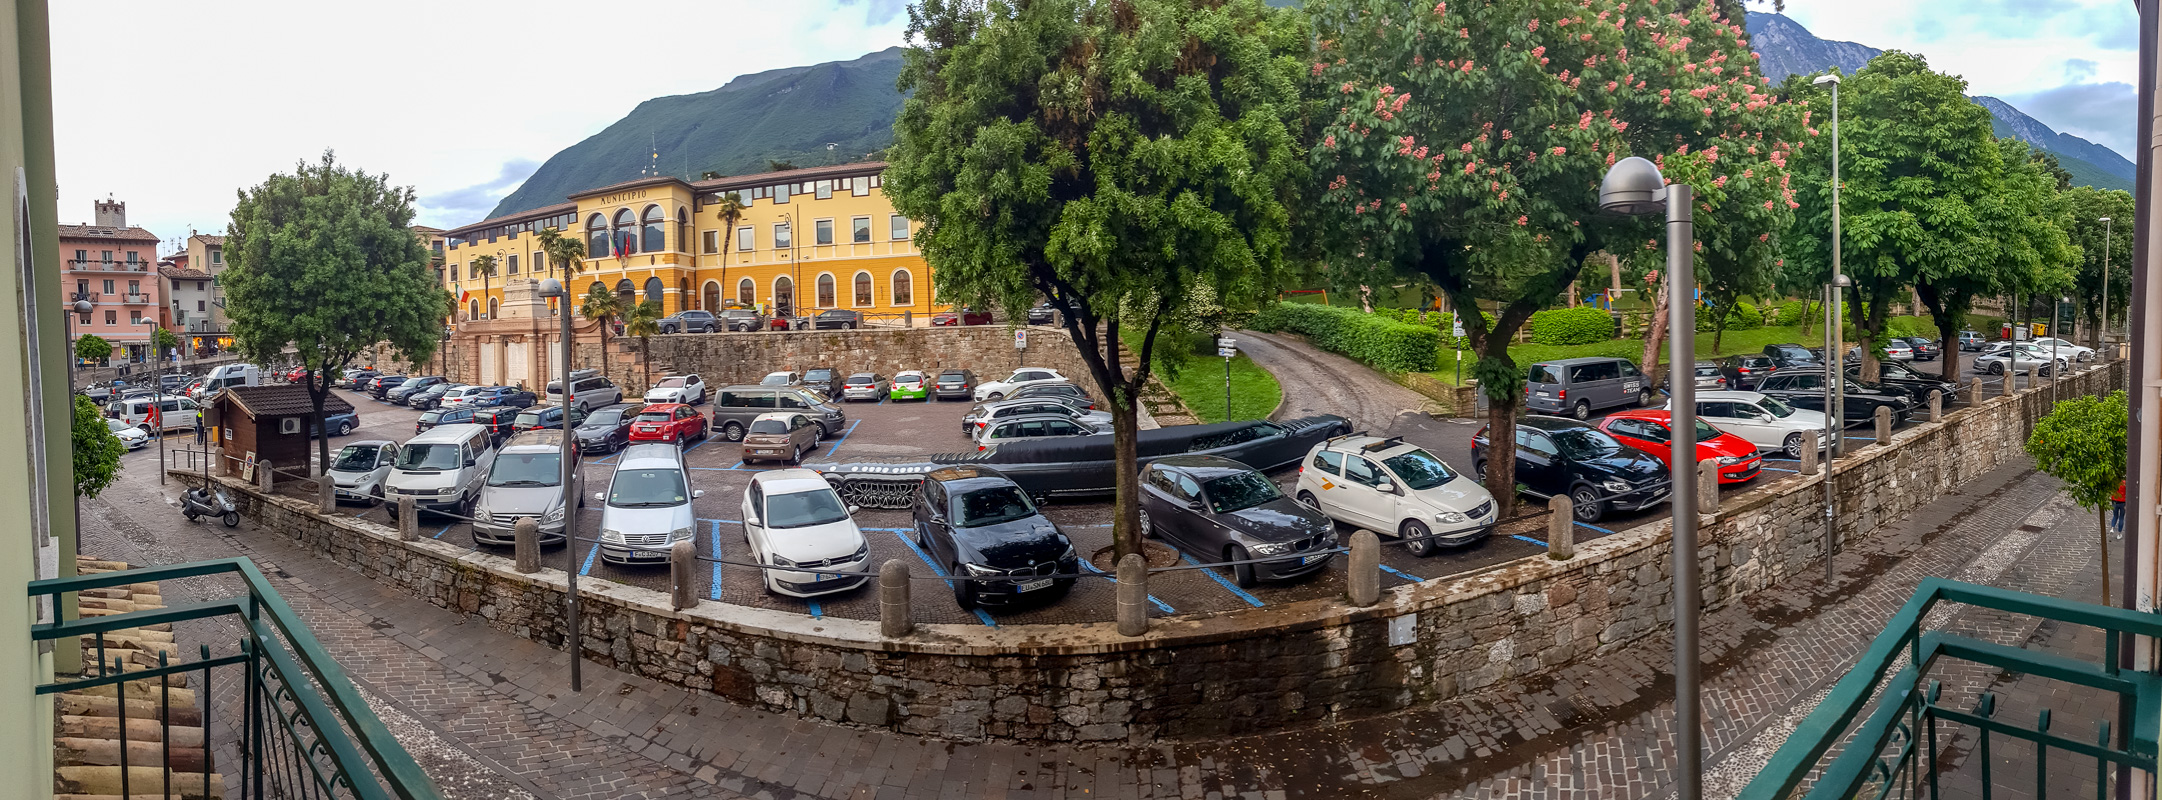 Panoramic view from our hotel room of the mountains and city hall.